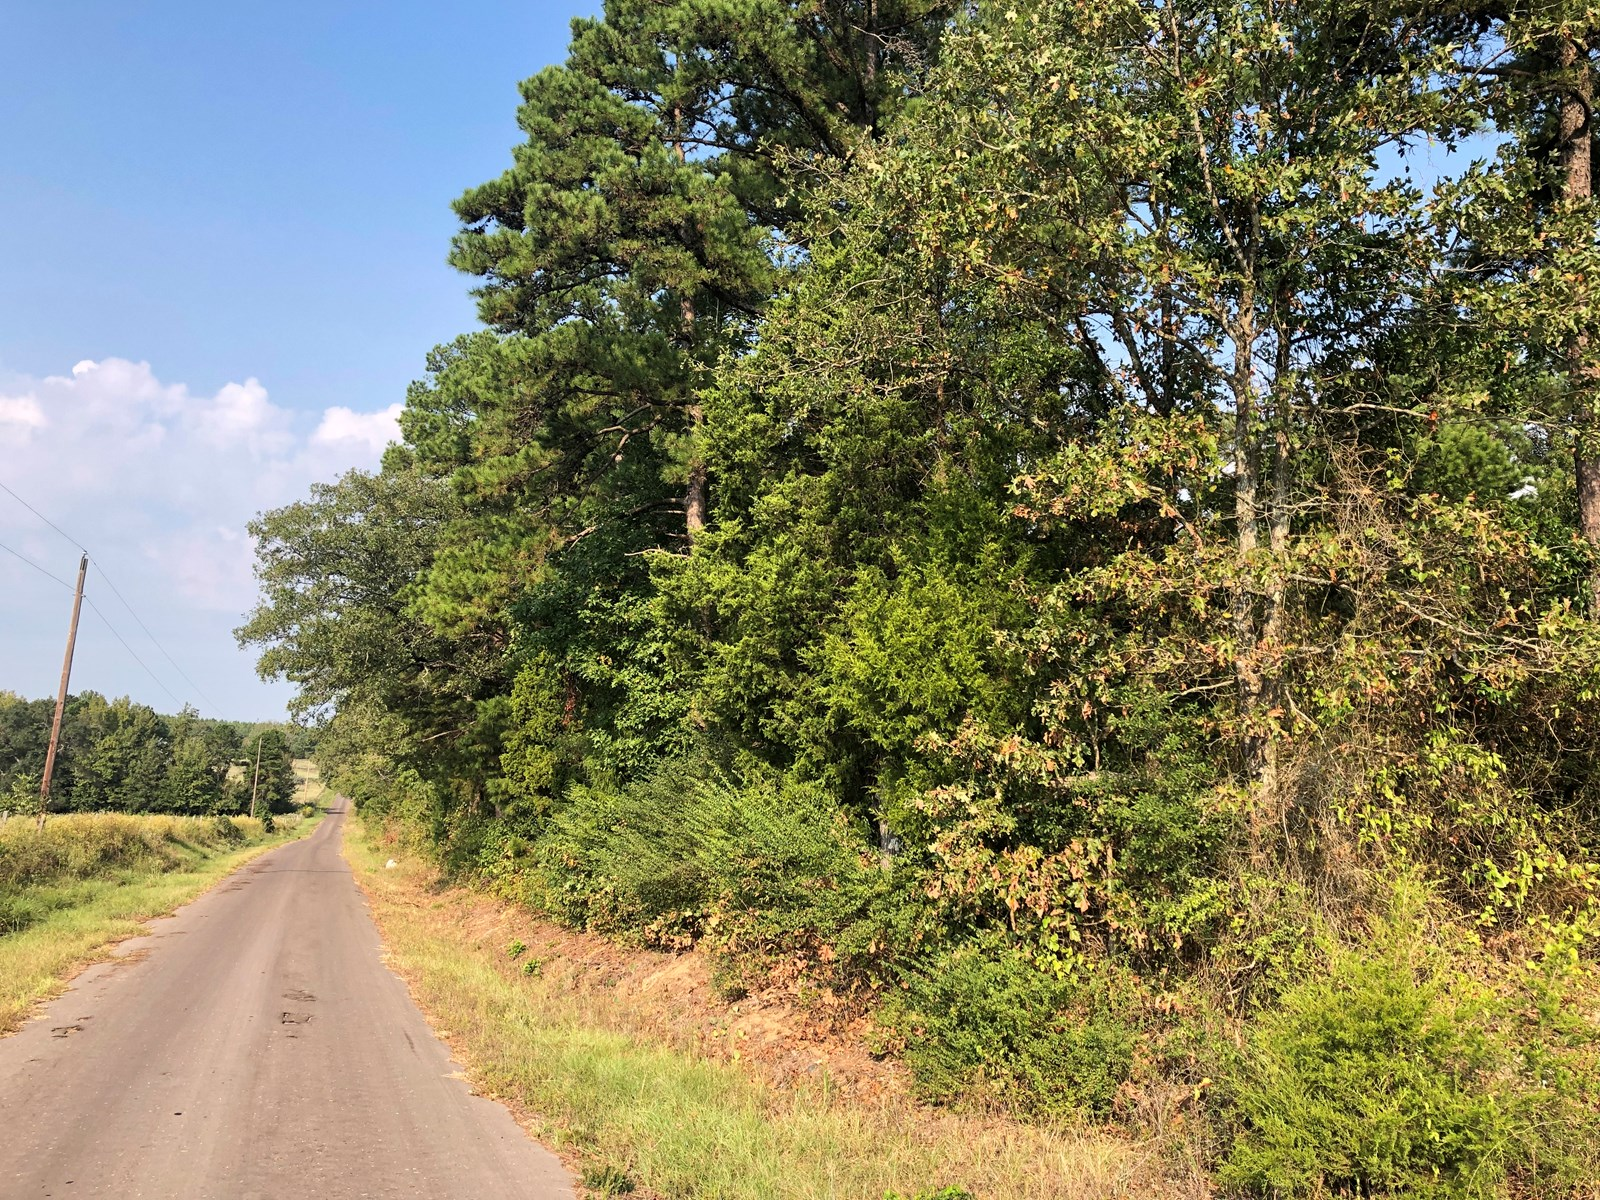 East TX Homesite, Timberland, Recreational Land for Sale